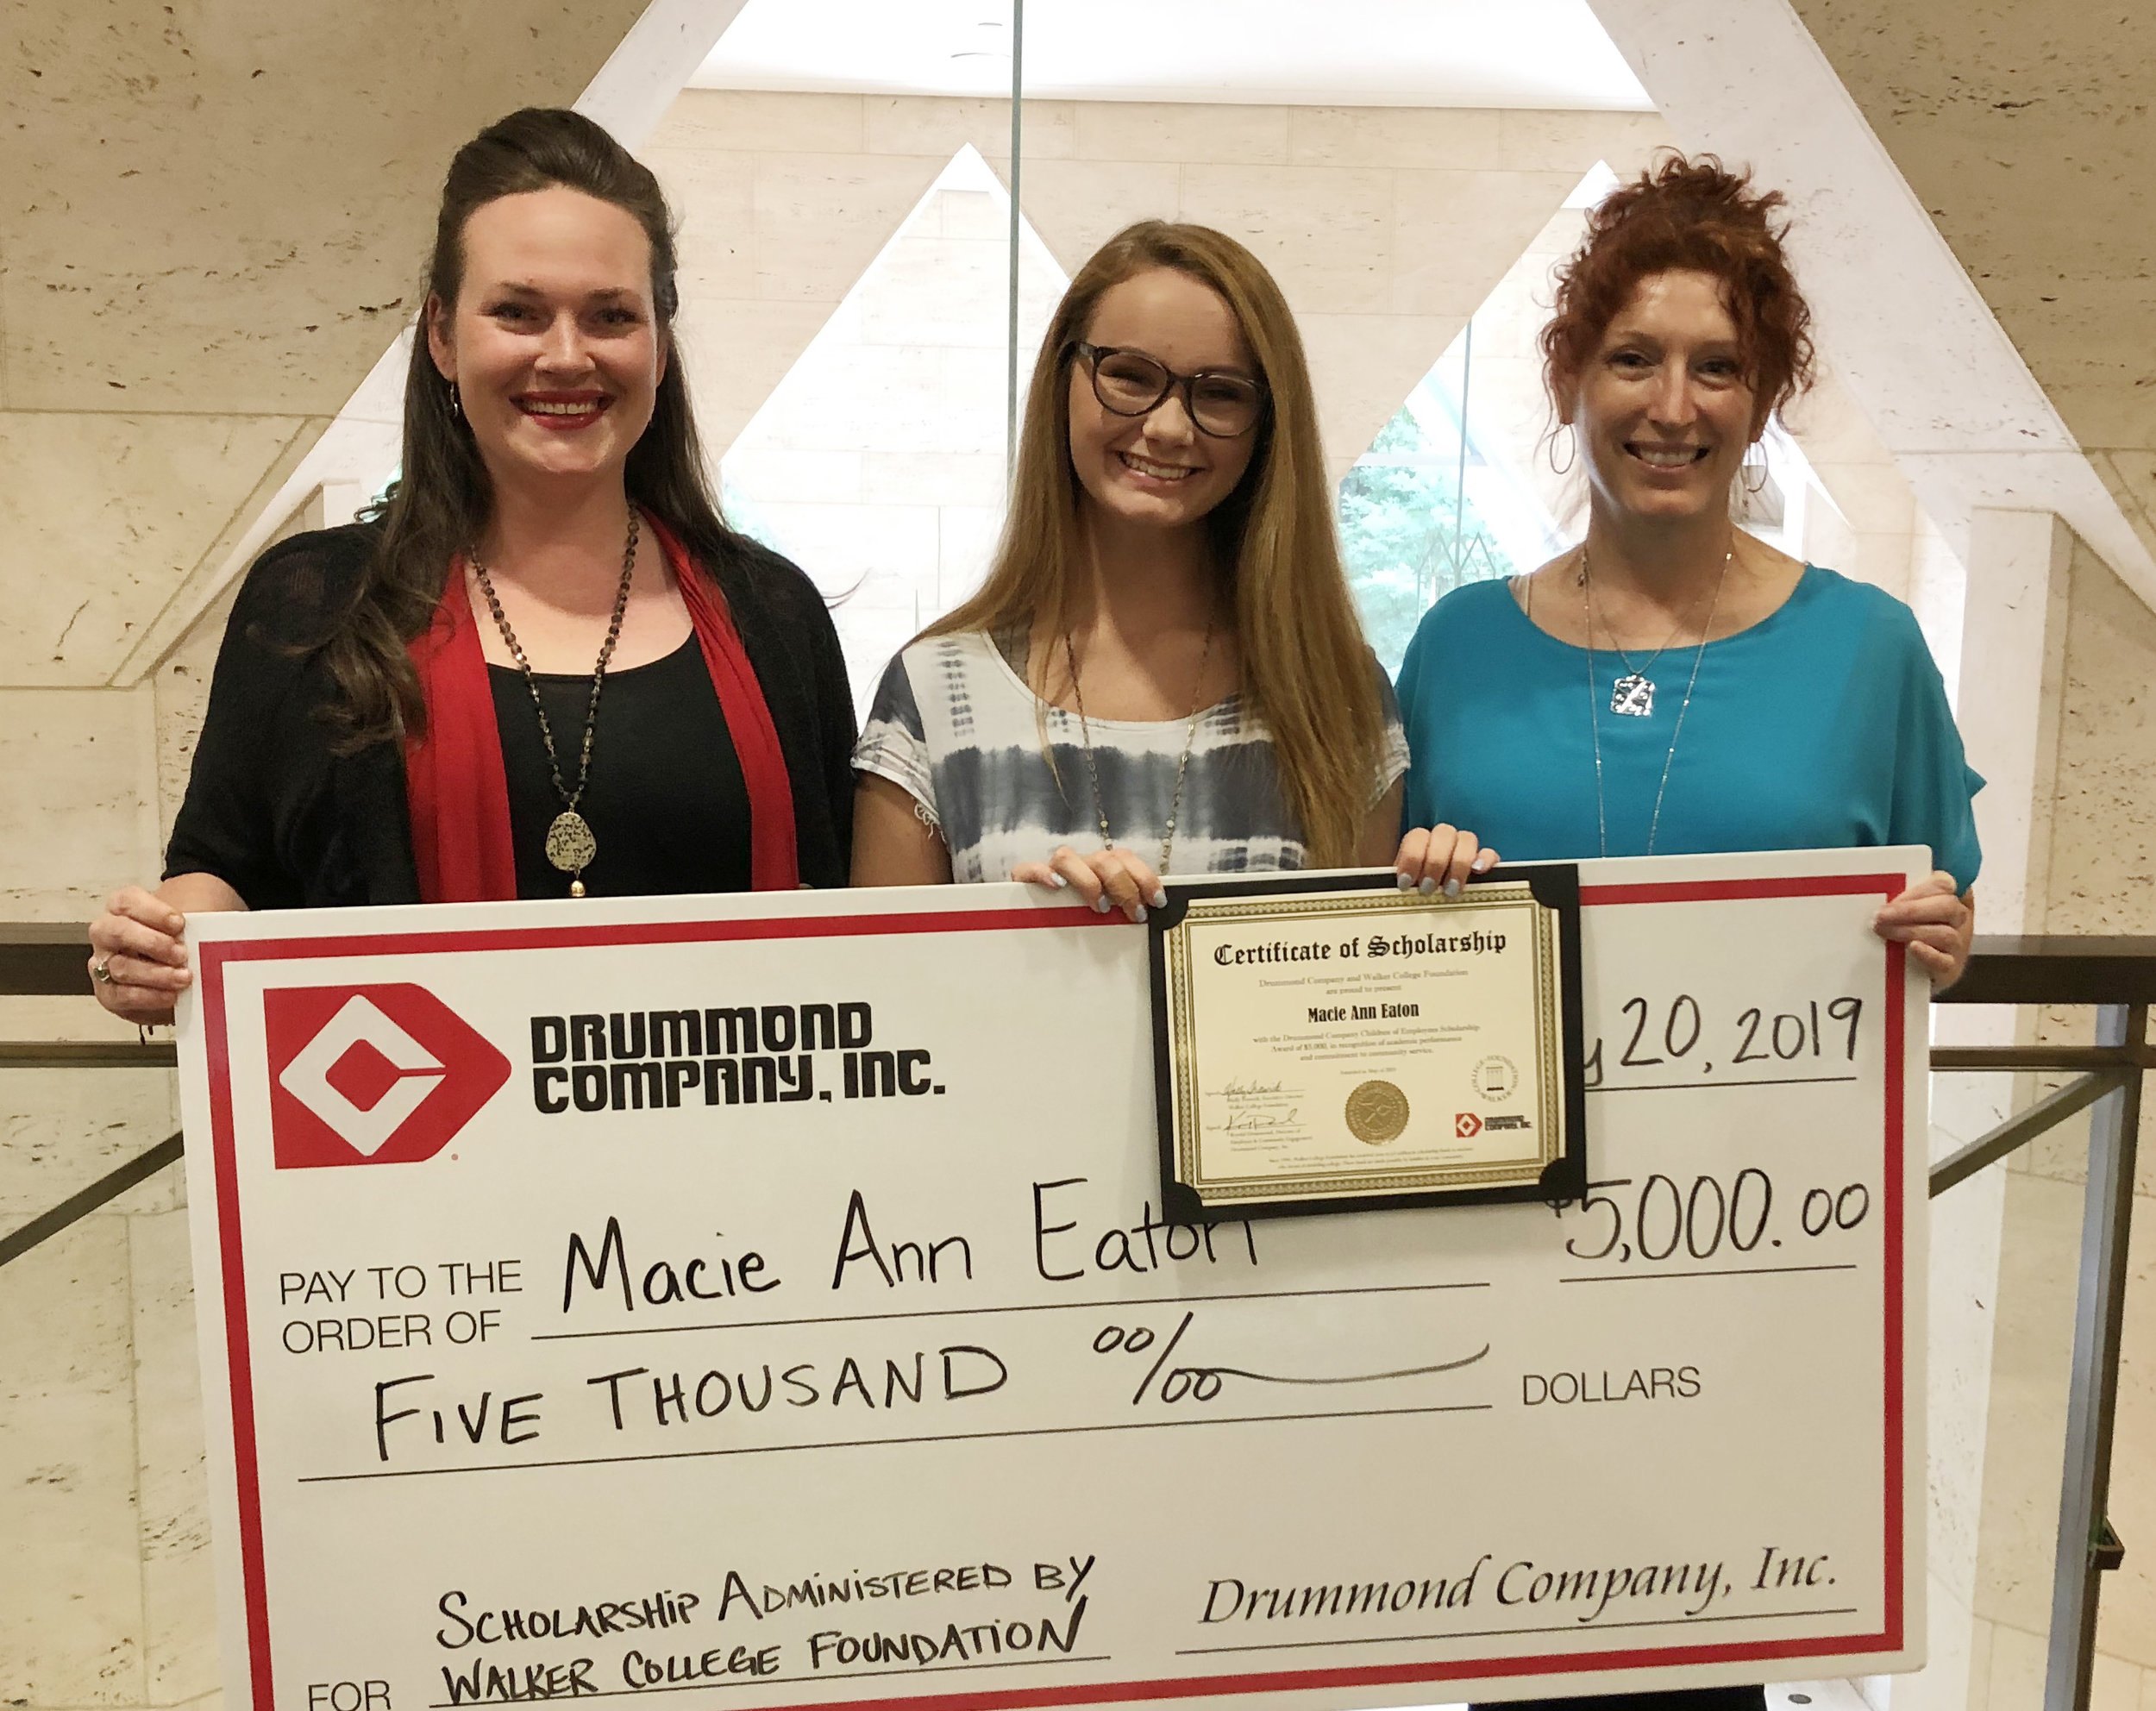 Macie Ann Eaton (ctr) is awarded the Drummond Company scholarship by Krystal and Holly.